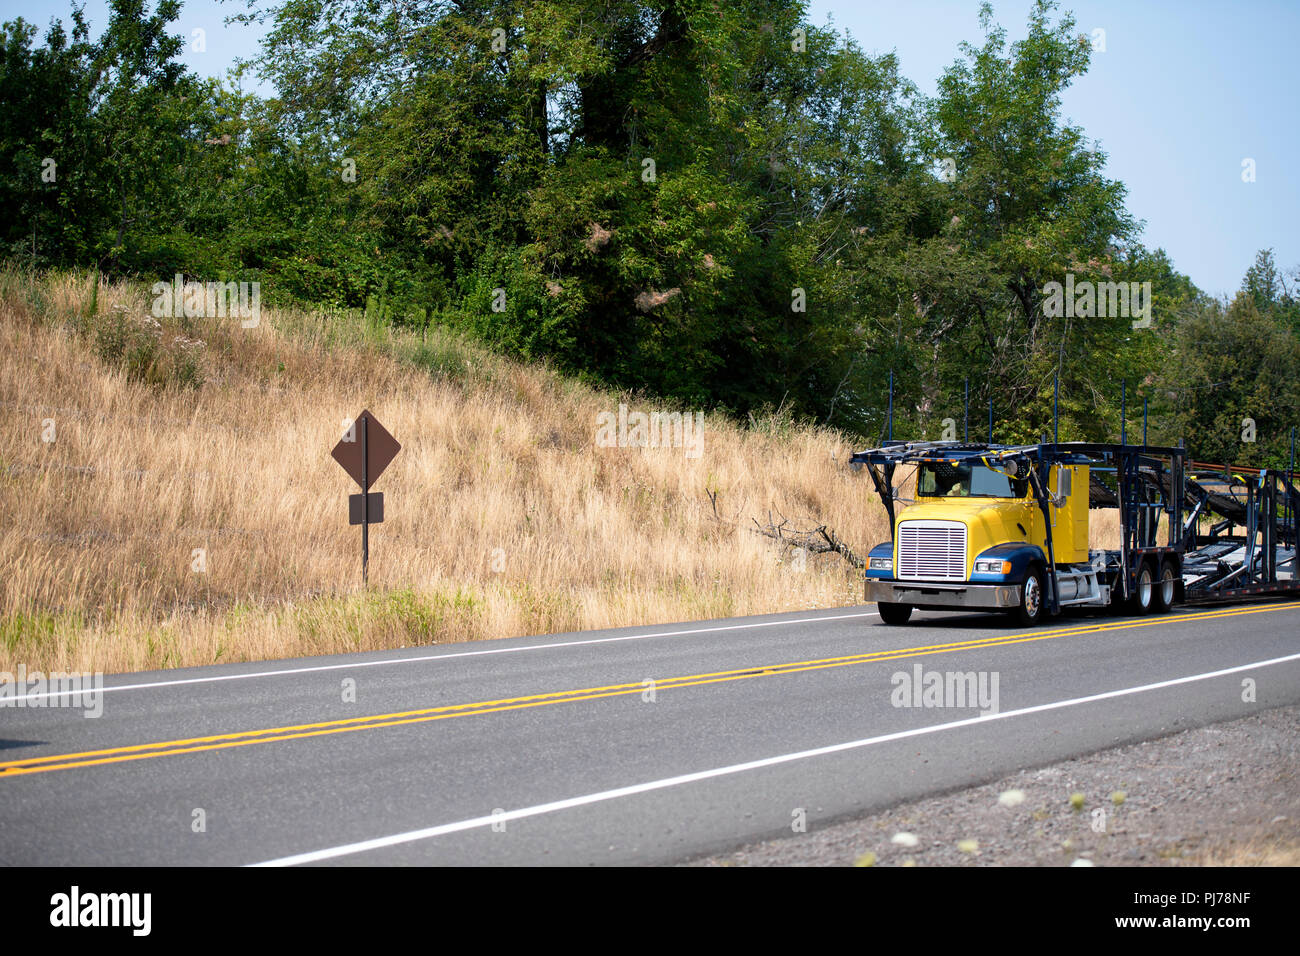 Specialized empty yellow big rig car hauler semi truck with two-tiered semi trailer going to load cars on winding road with hill and green trees Stock Photo